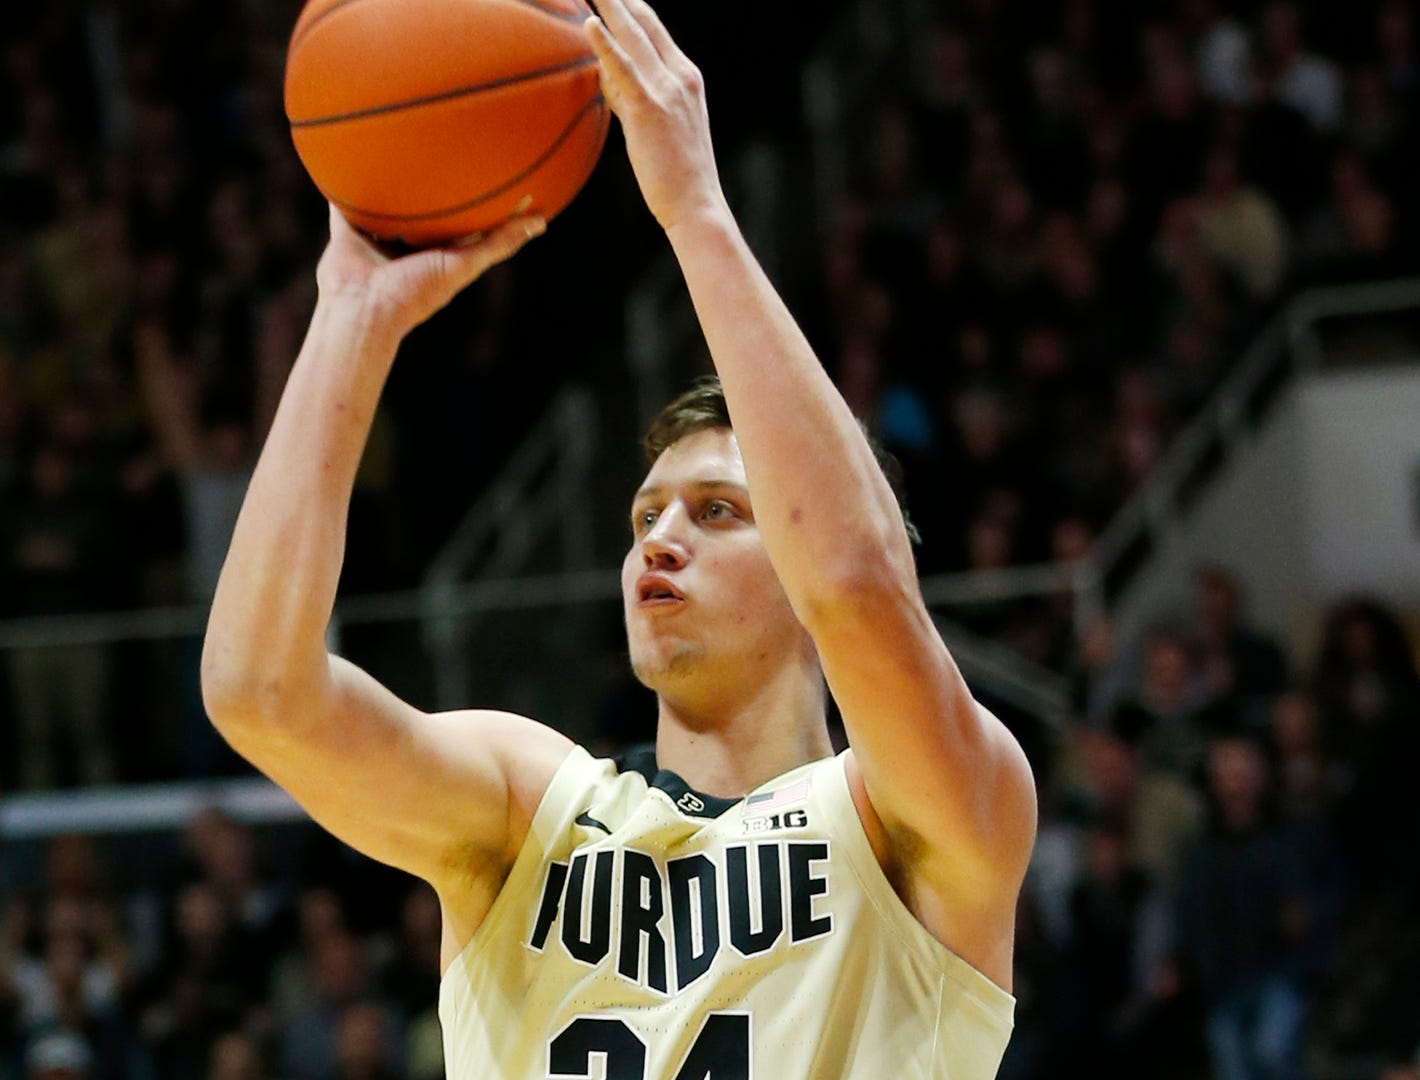 Grady Eifert of Purdue drains a three-point shot to tie the game at 41-41 against Maryland with 14:32 remaining Thursday, December 6, 2018, at Mackey Arena. Purdue defeated Maryland 62-60.